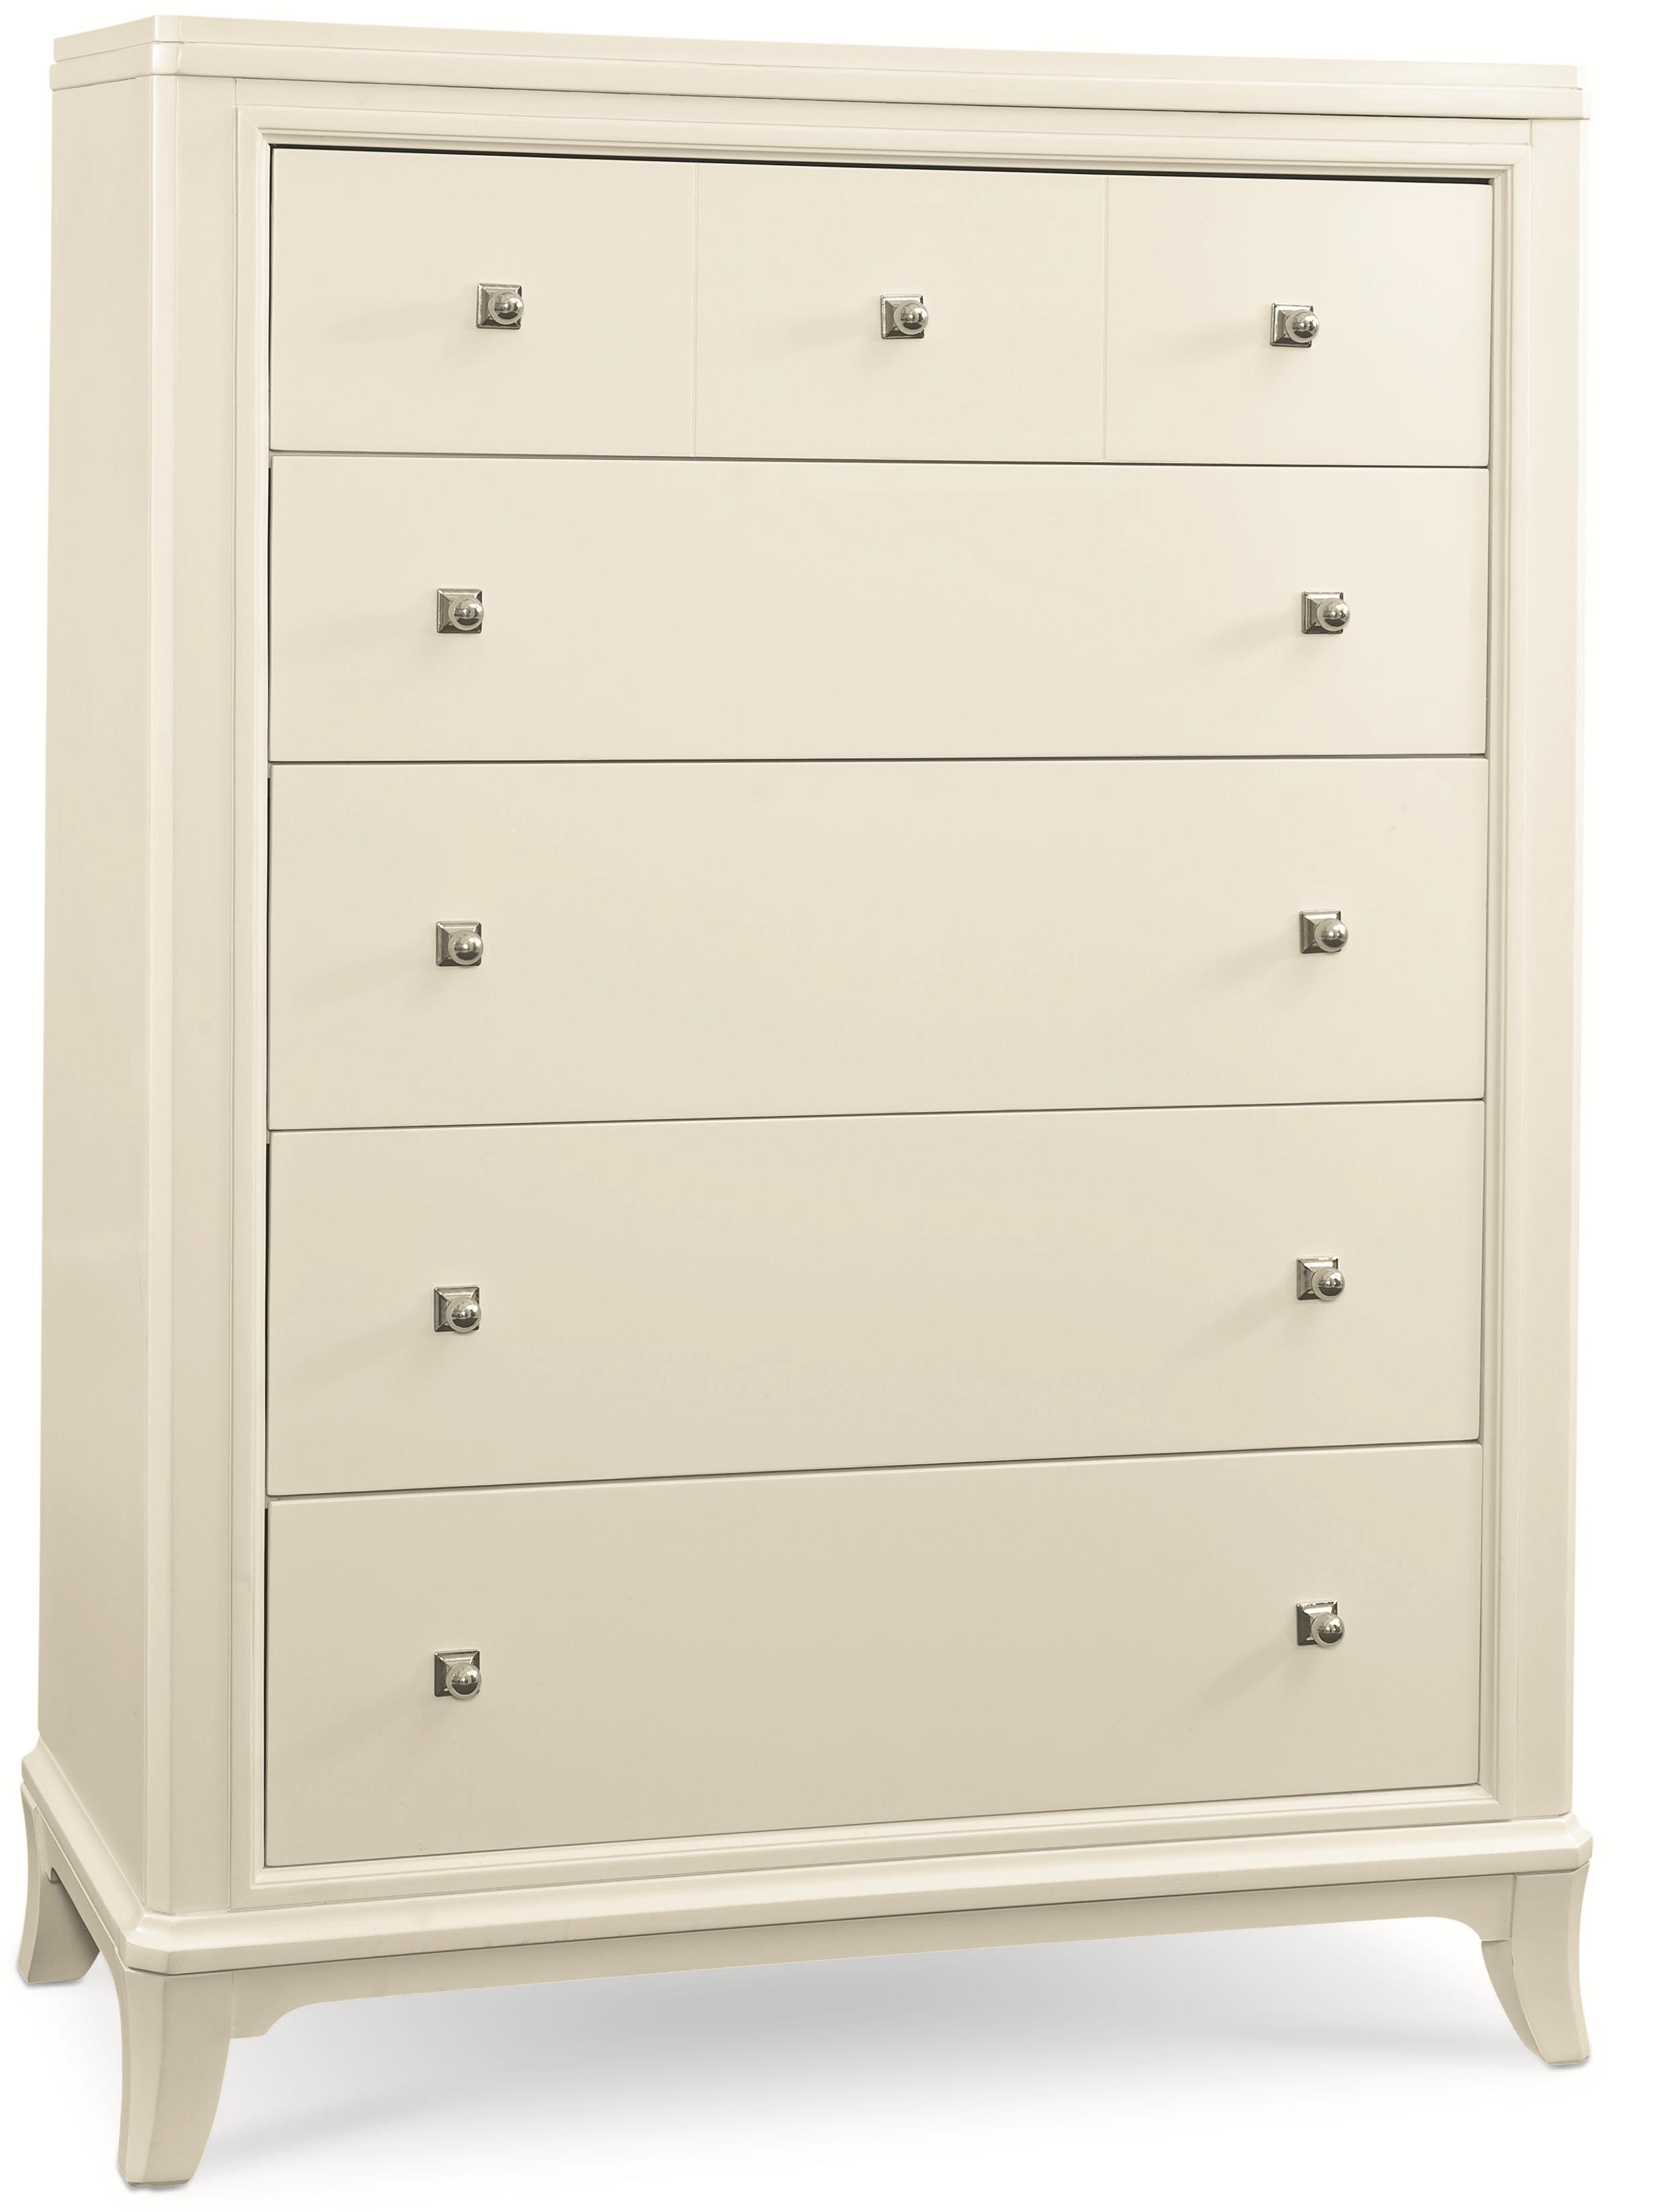 Thomasville® Manuscript Drawer Chest - Item Number: 82915-311